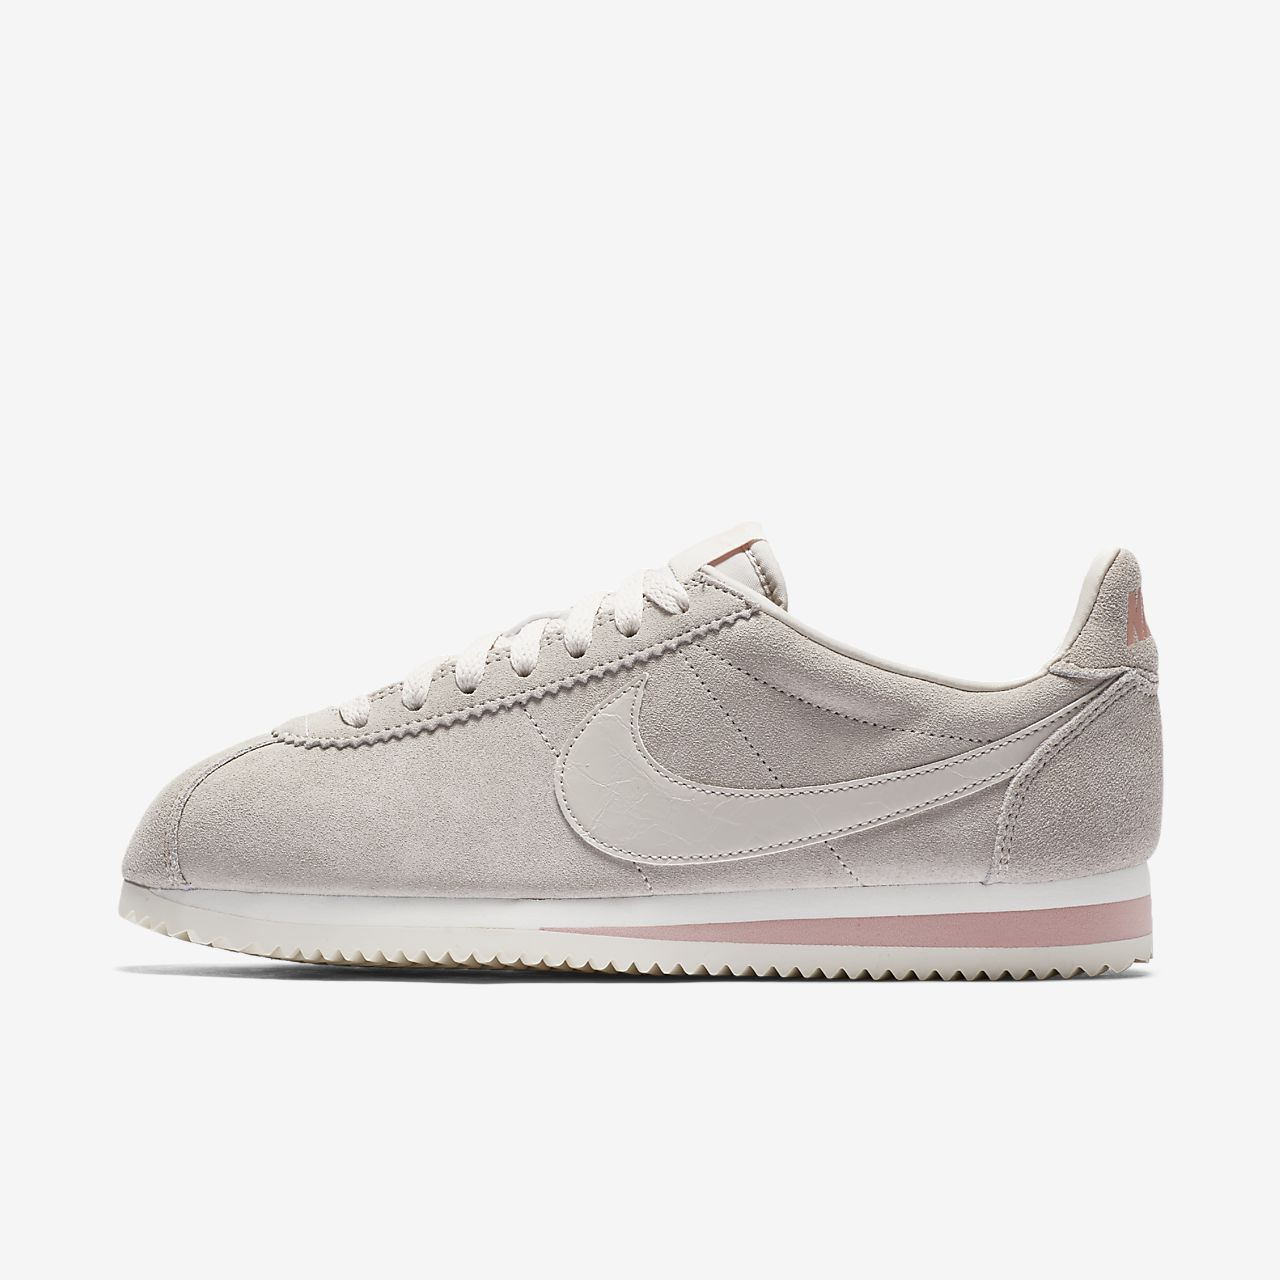 new product ce0b9 fce20 ... switzerland nike classic cortez suede womens shoe 7b778 a89c2 ...